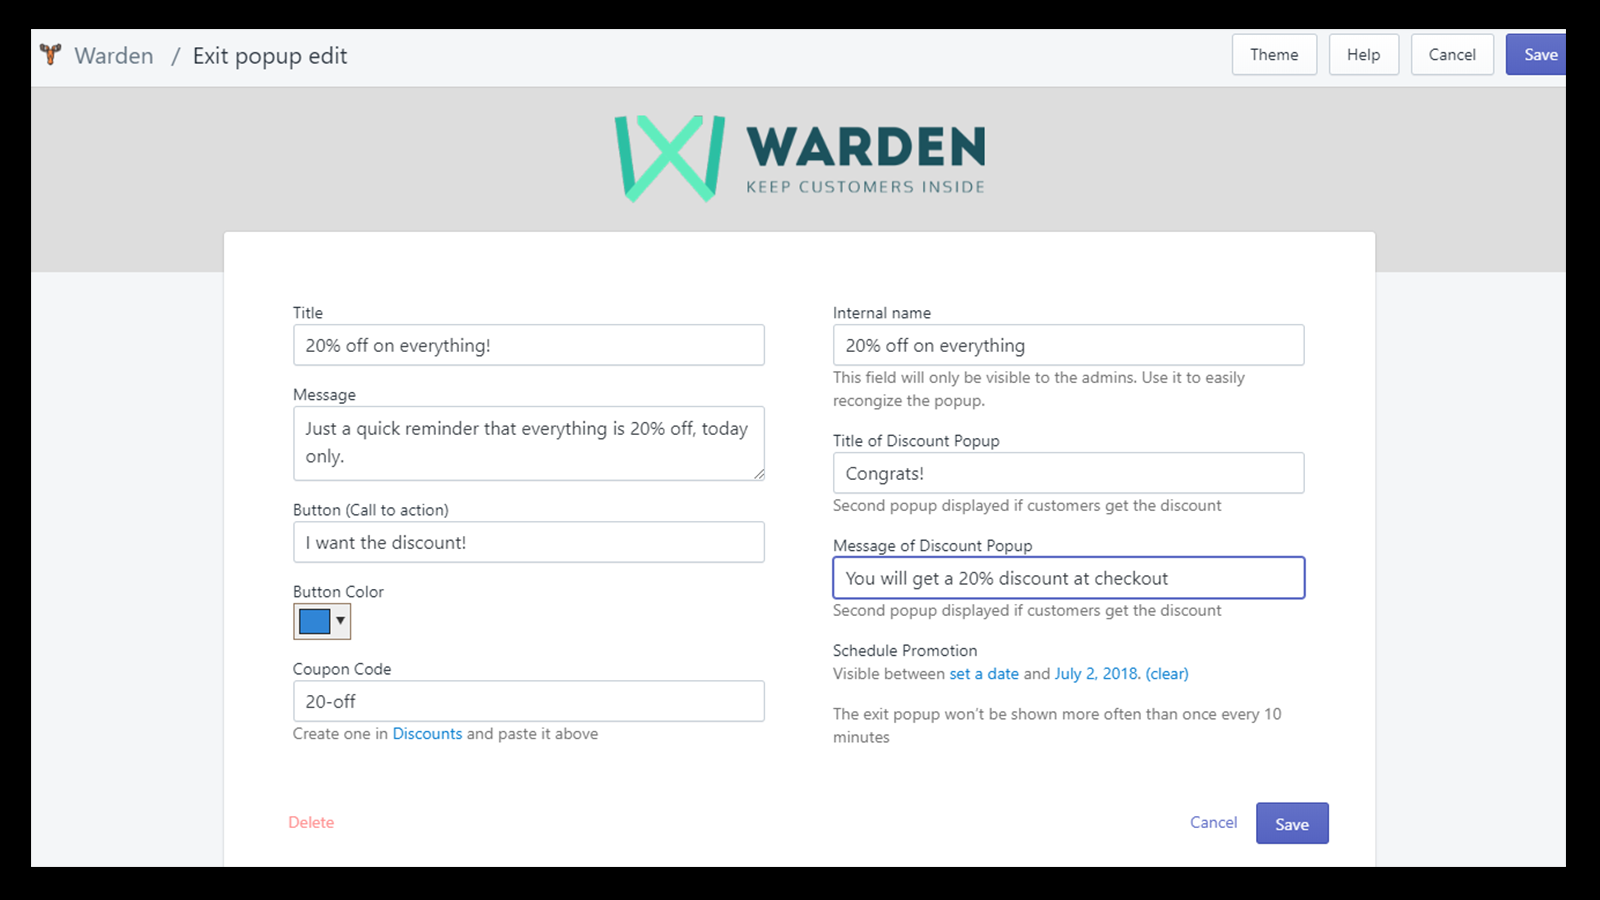 Warden app exit discount popup admin screen